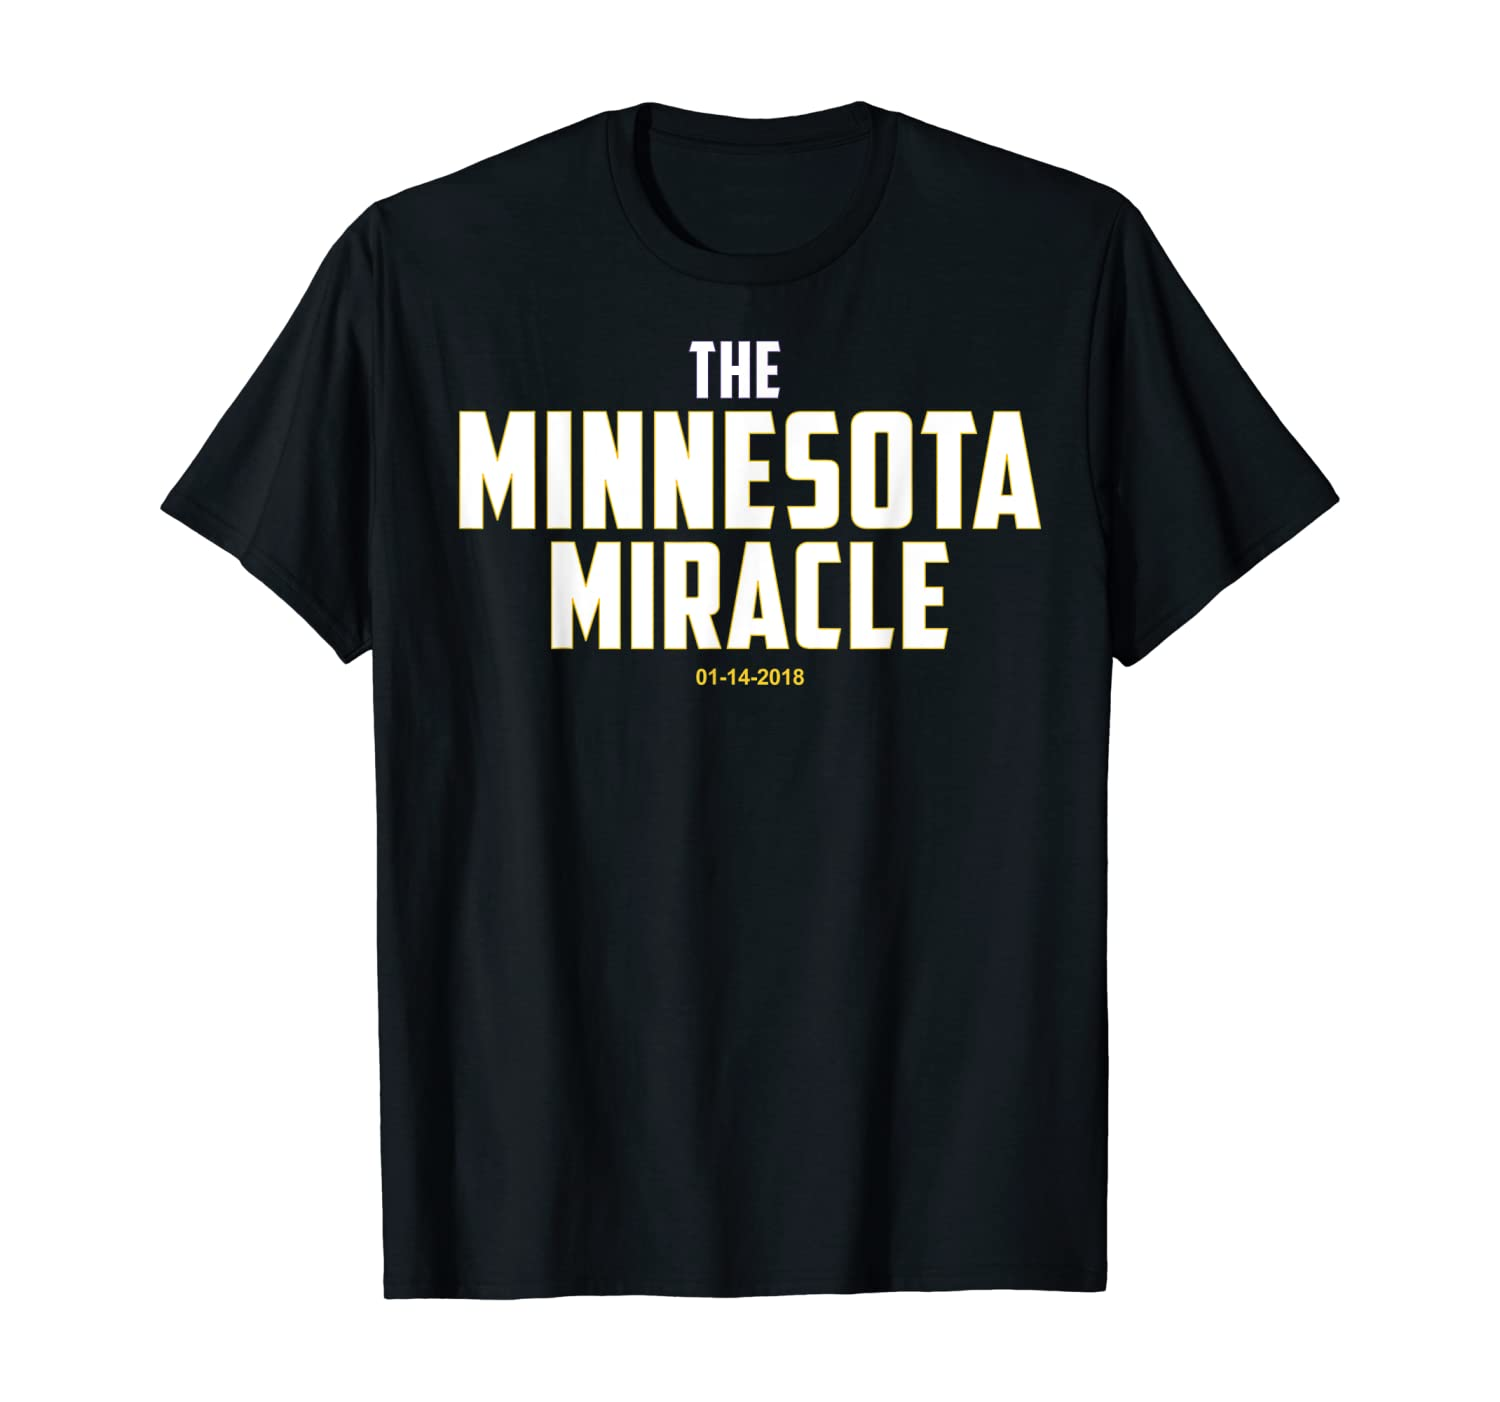 The Minnesota Miracle t-shirt